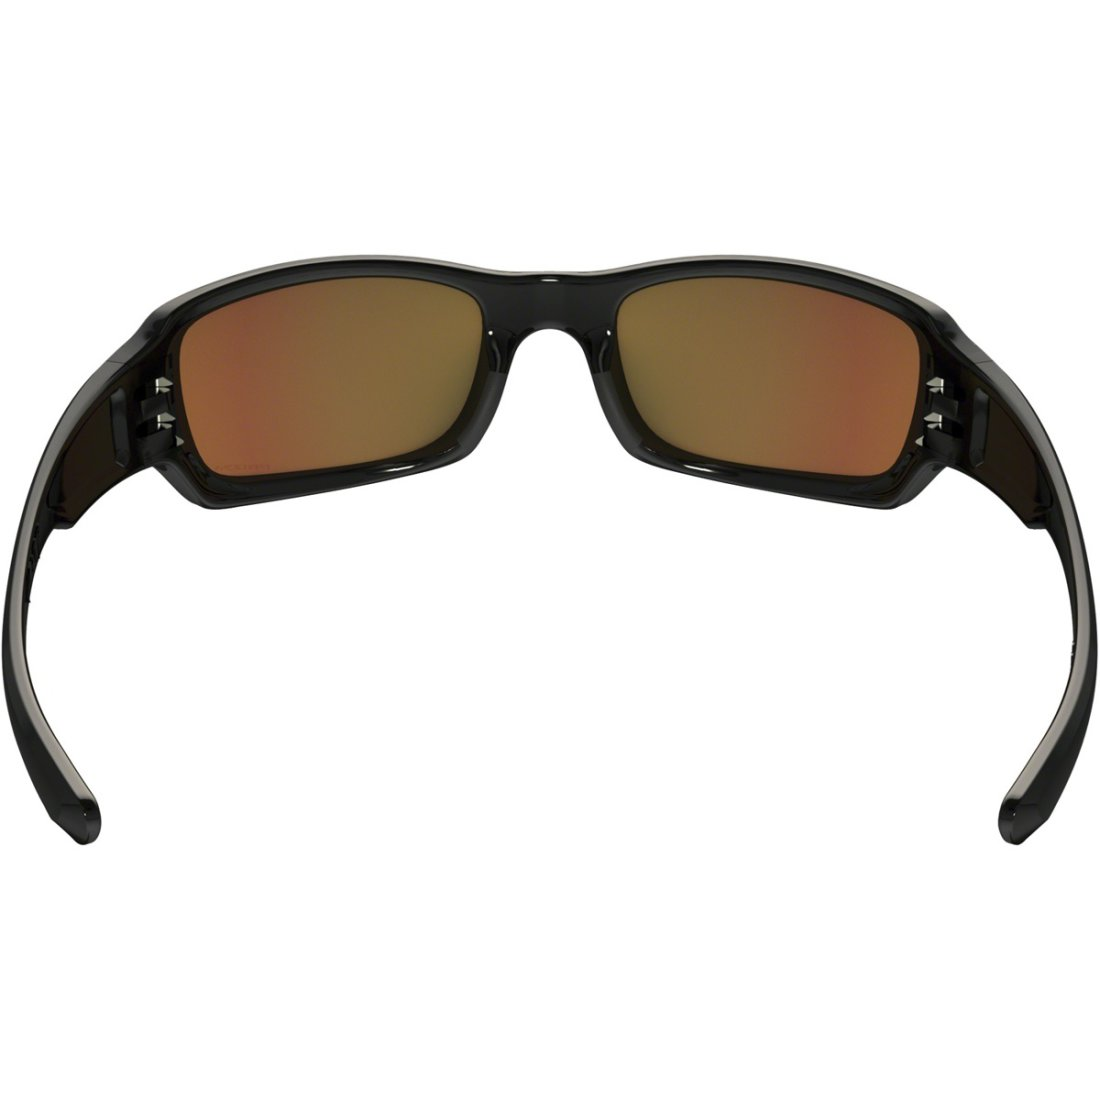 0325e717d5 OAKLEY Fives Squared Polished Black   Prizm Shallow Water Polarized Sun  glasses